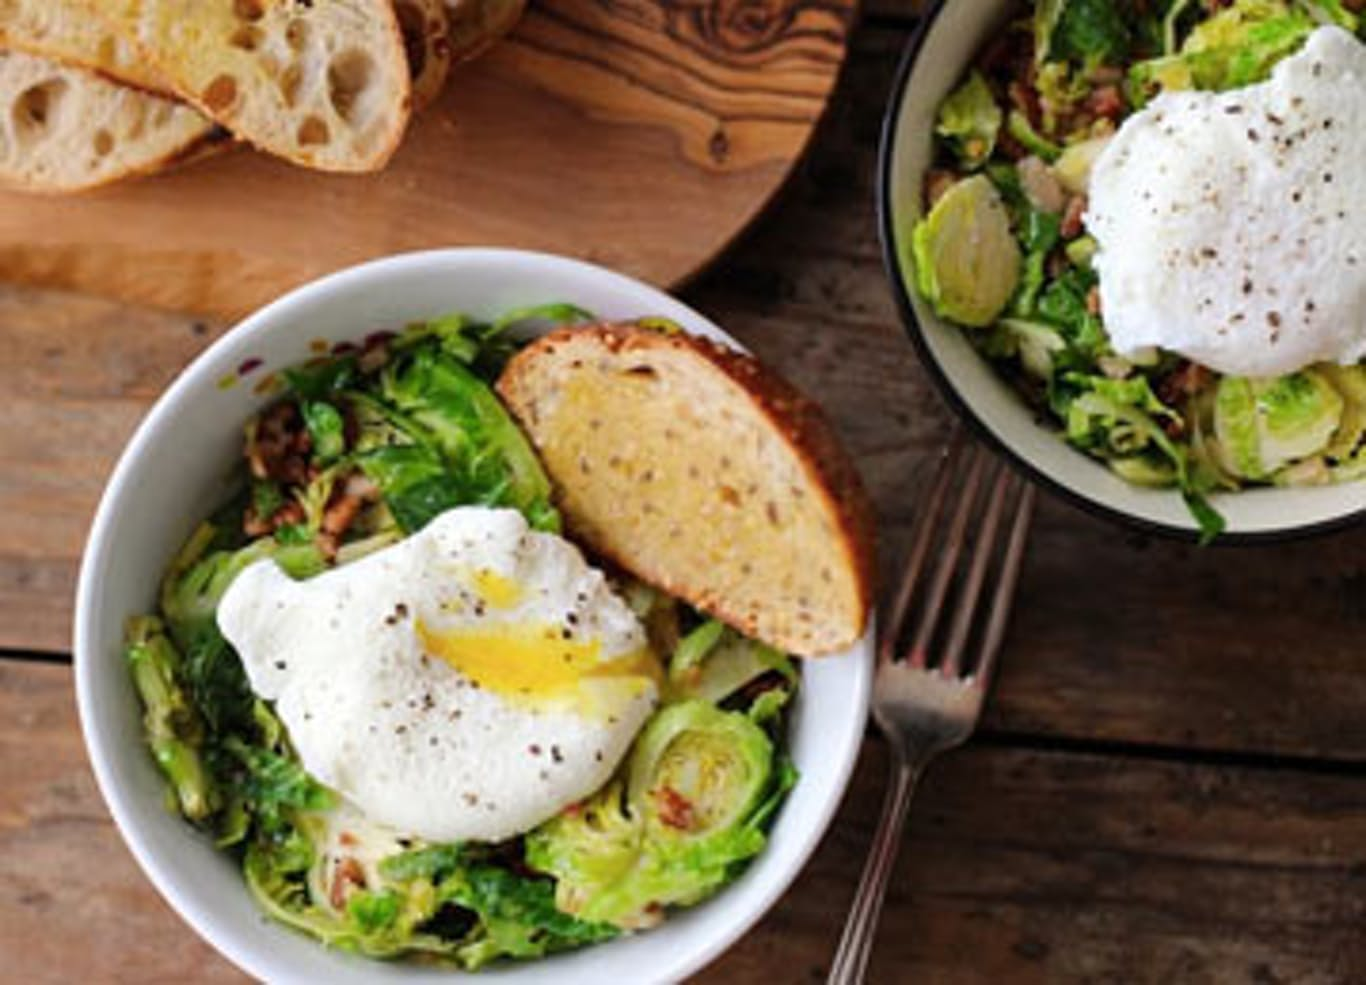 BRUSSELS SPROUTS AND BACON WITH POACHED EGG BOWL